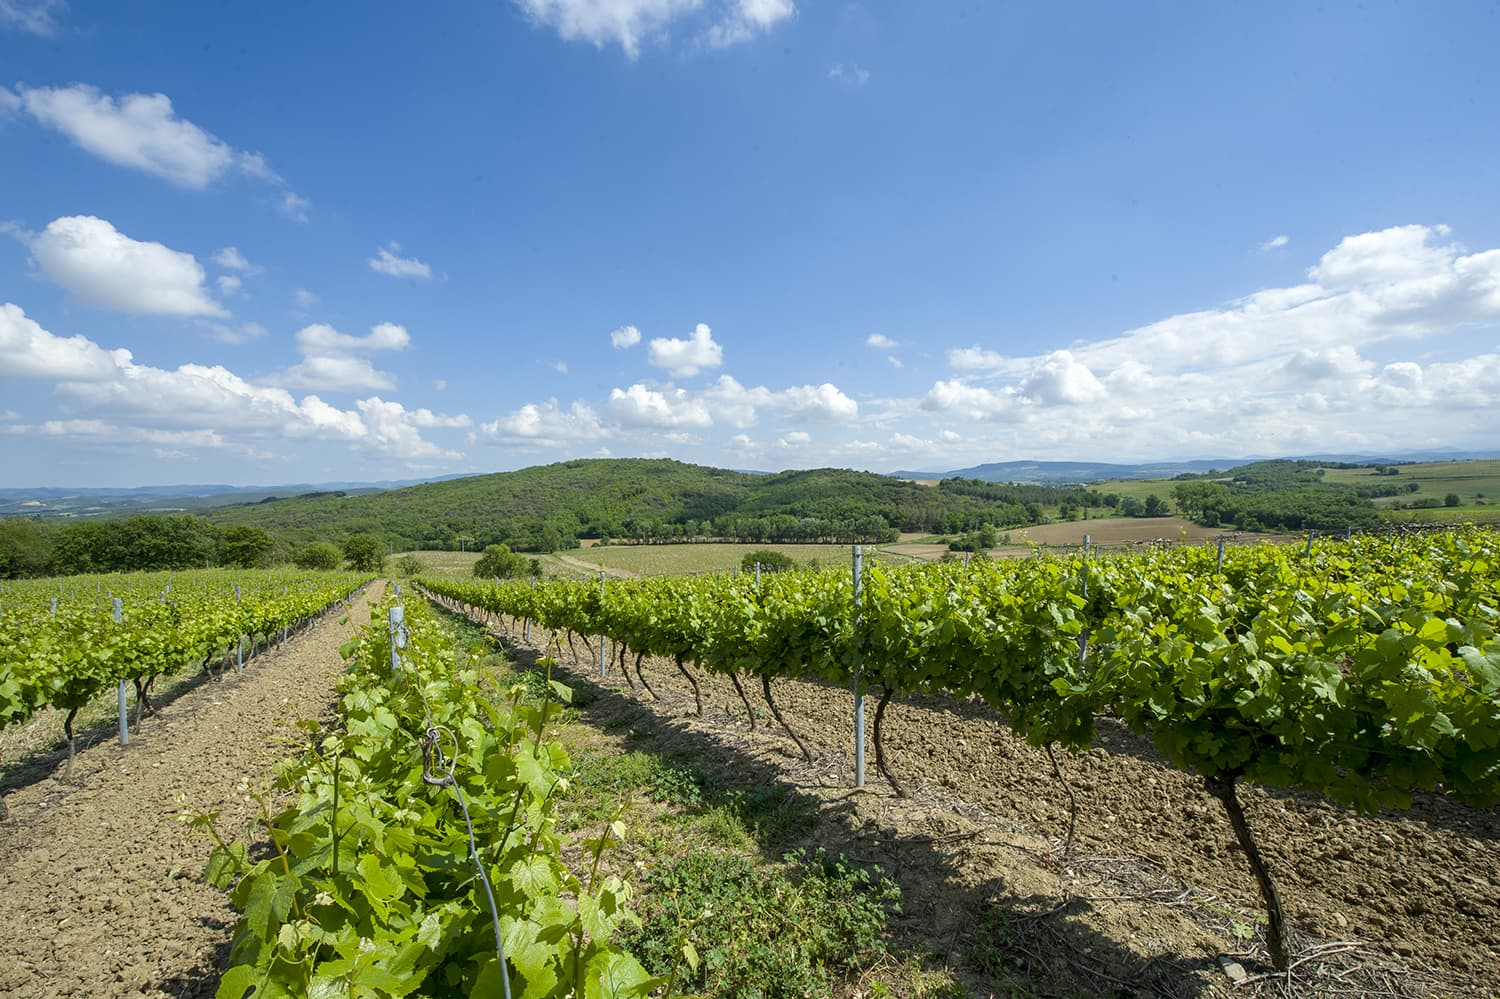 Malepere vineyards in the Languedoc